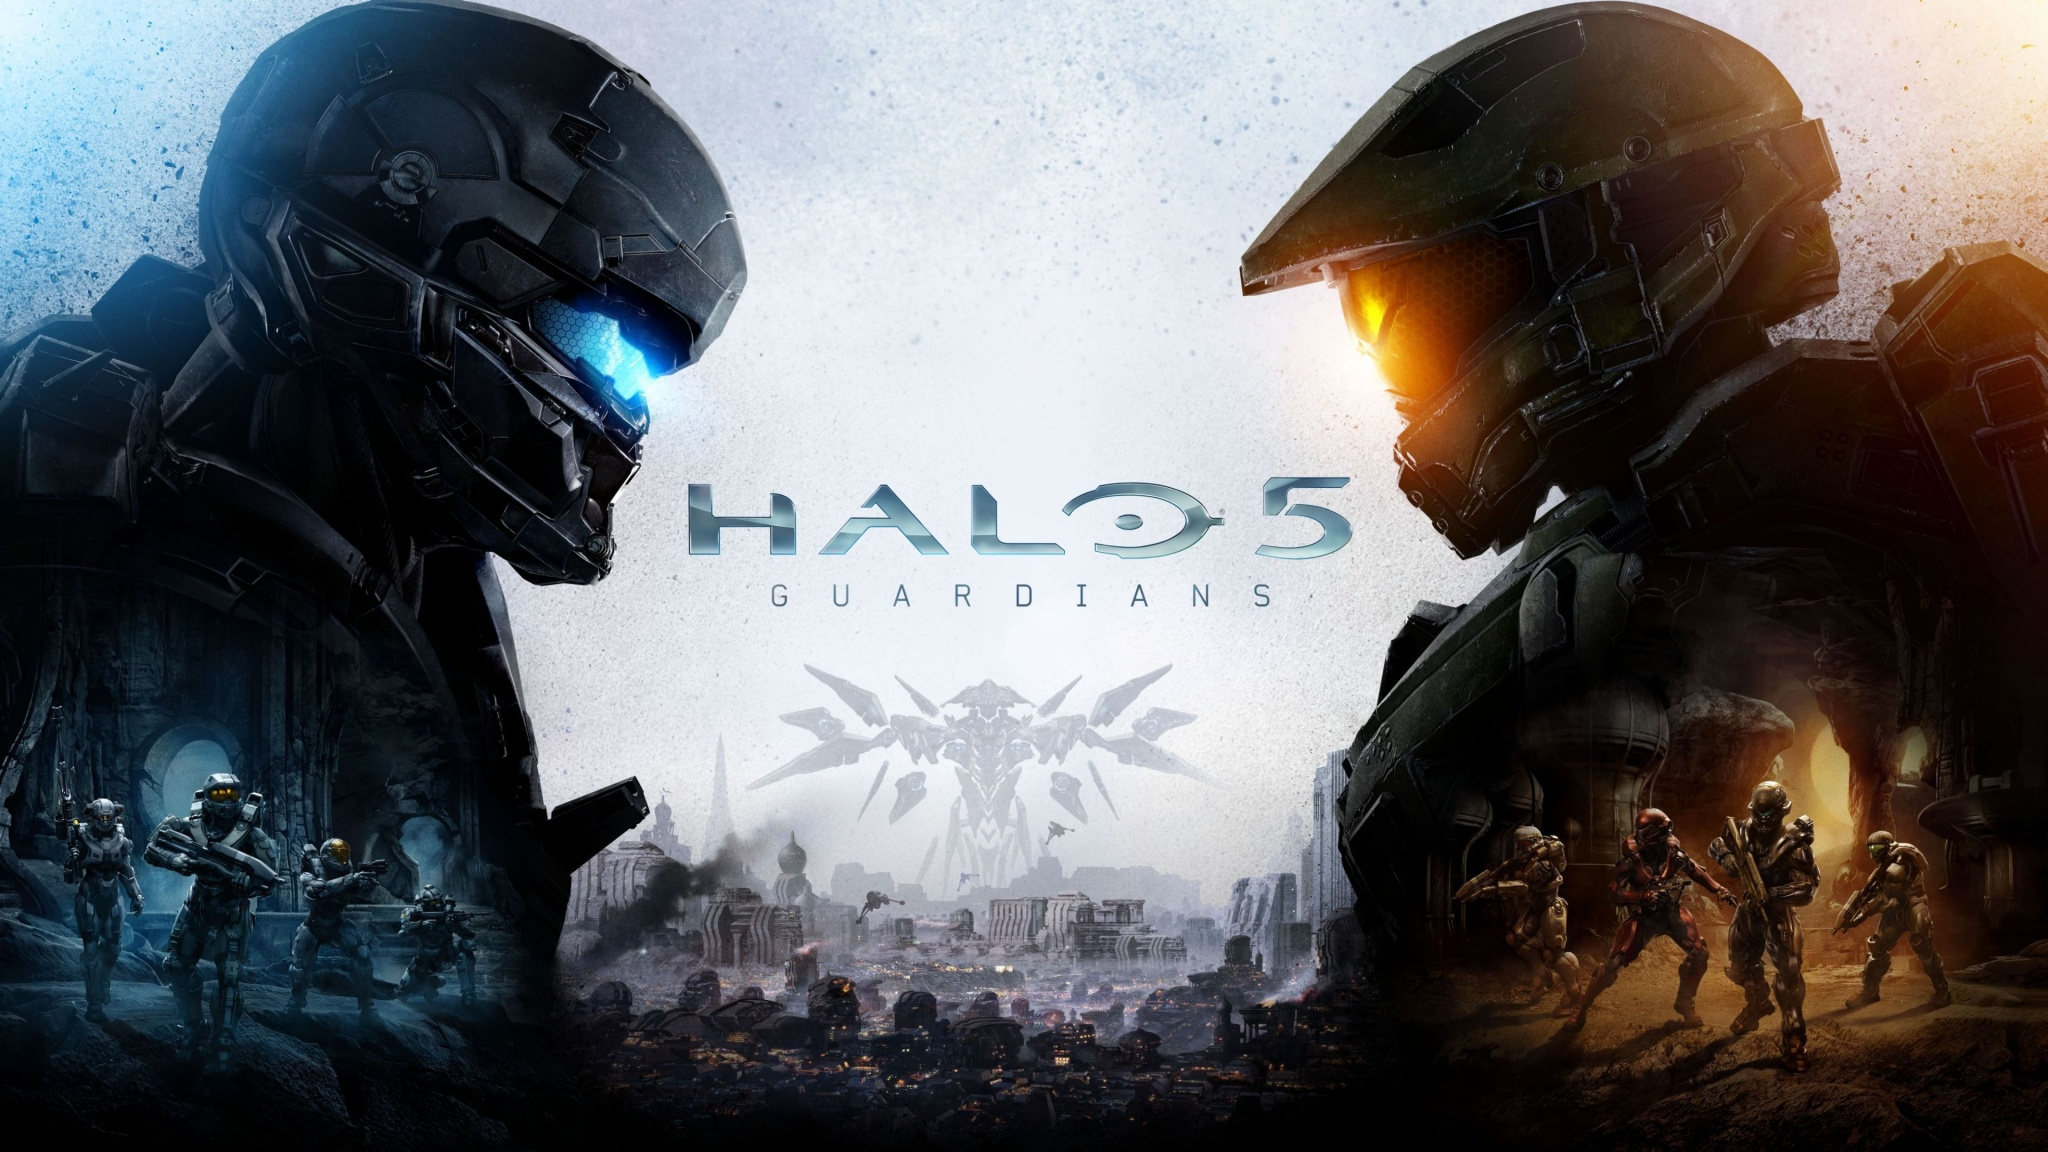 Halo 5 Guardians Wallpaper: Halo 5: Guardians Poster Wallpapers